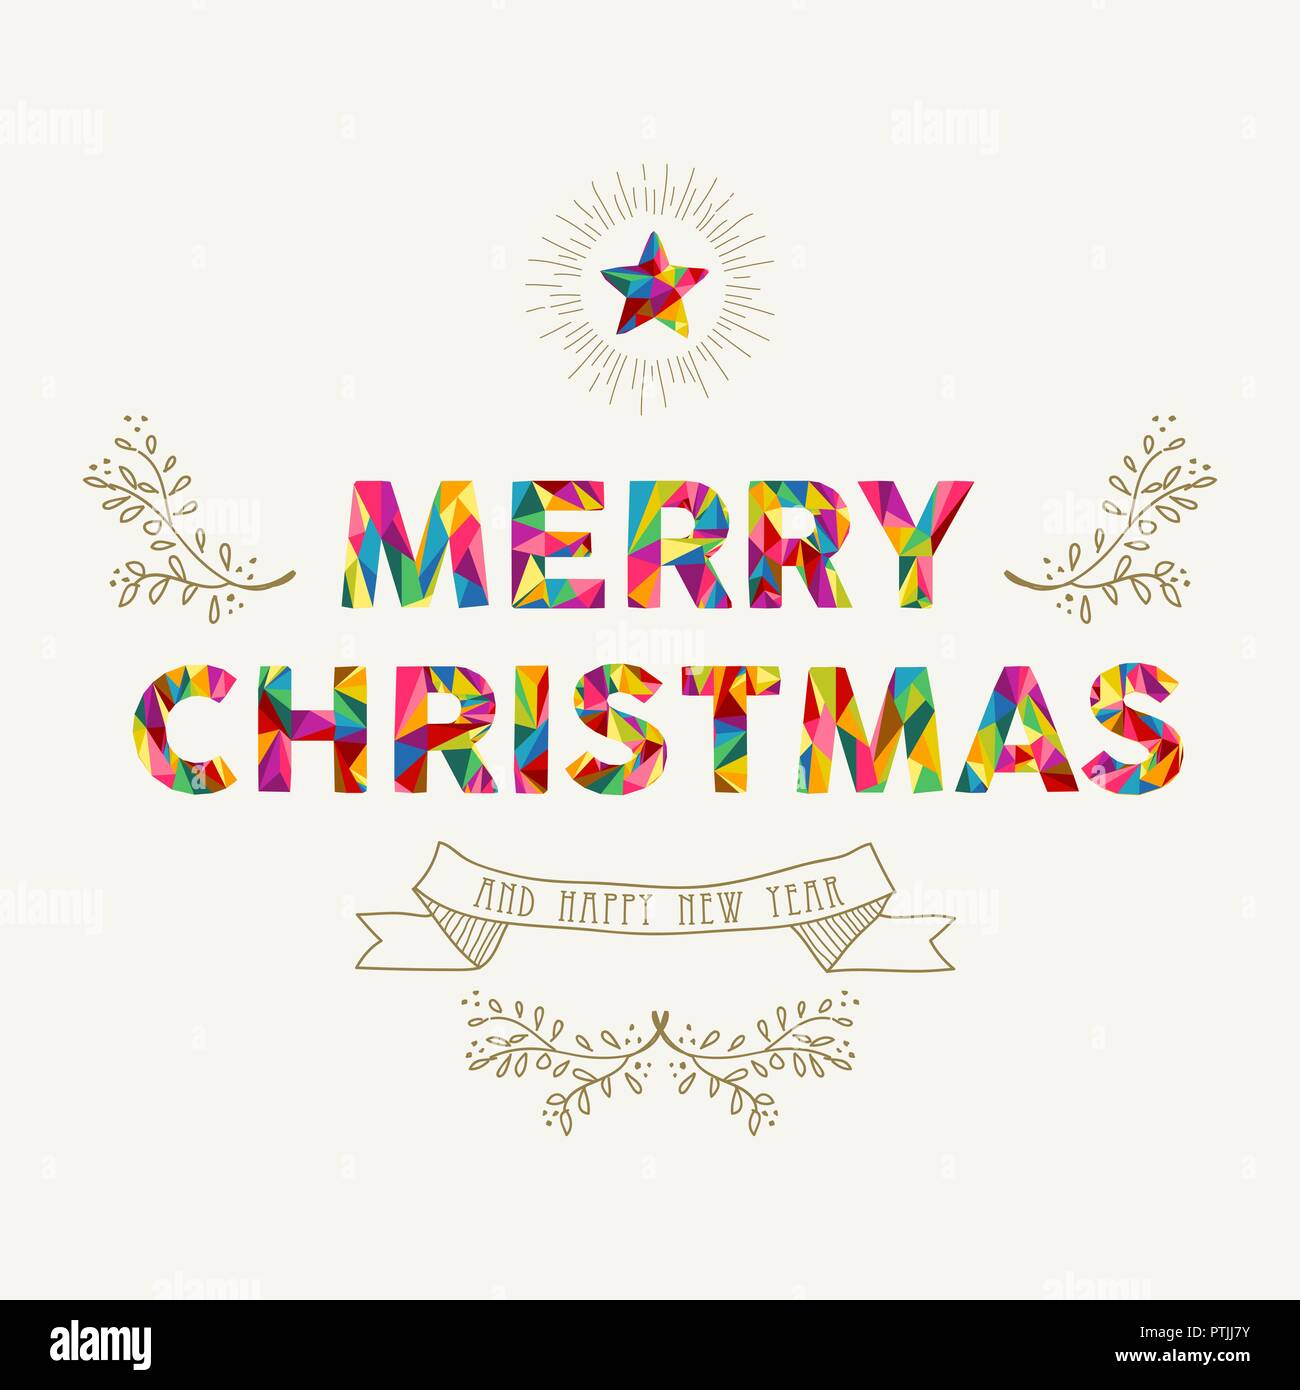 merry christmas and happy new year greeting card colorful low poly style text quote typography message xmas season illustration in holiday colors e